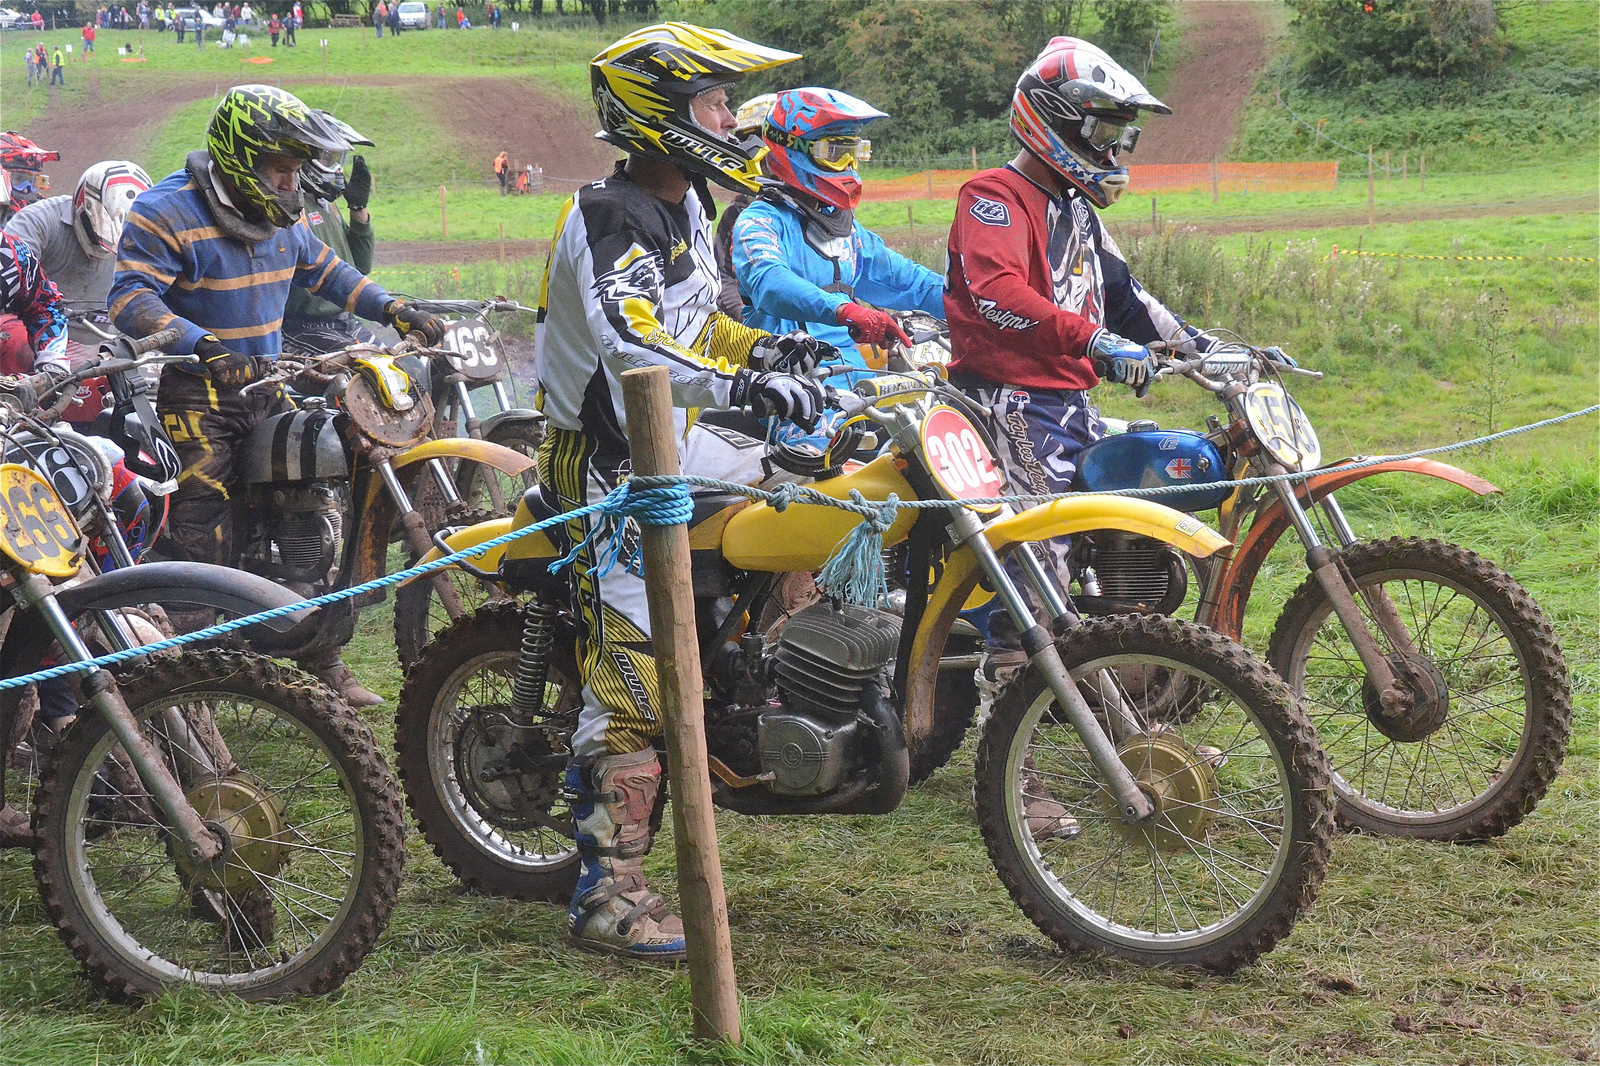 Llanthony Classic Scramble Photos September 2015 classicdirtbikerider.com..30